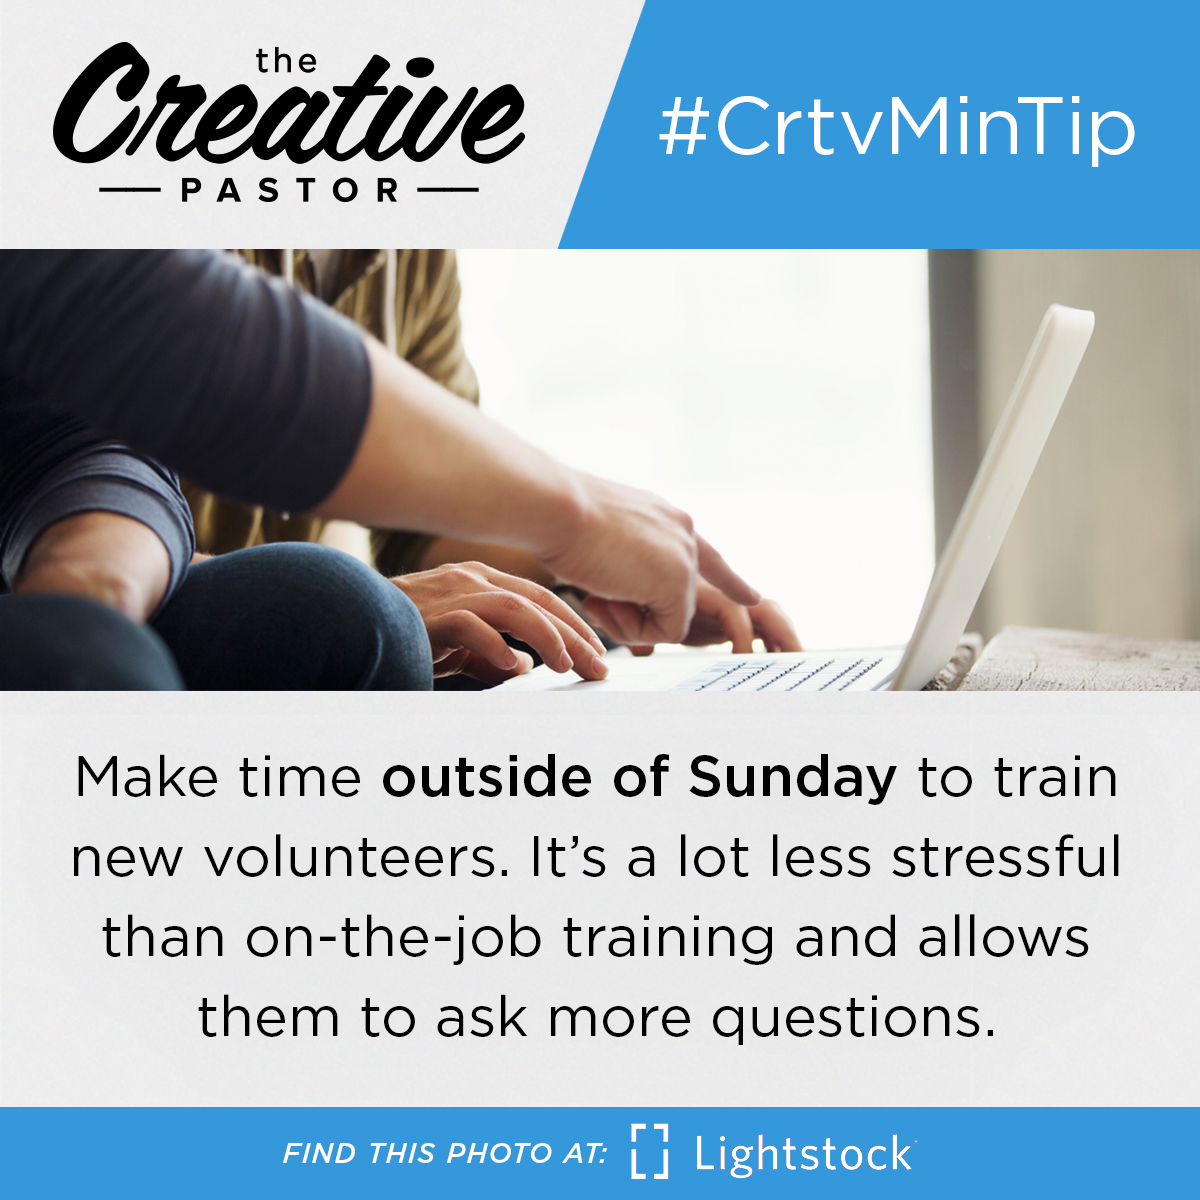 Make time outside of Sunday to train new volunteers. It's a lot less stressful than on-the-job training and allows them to ask more questions.